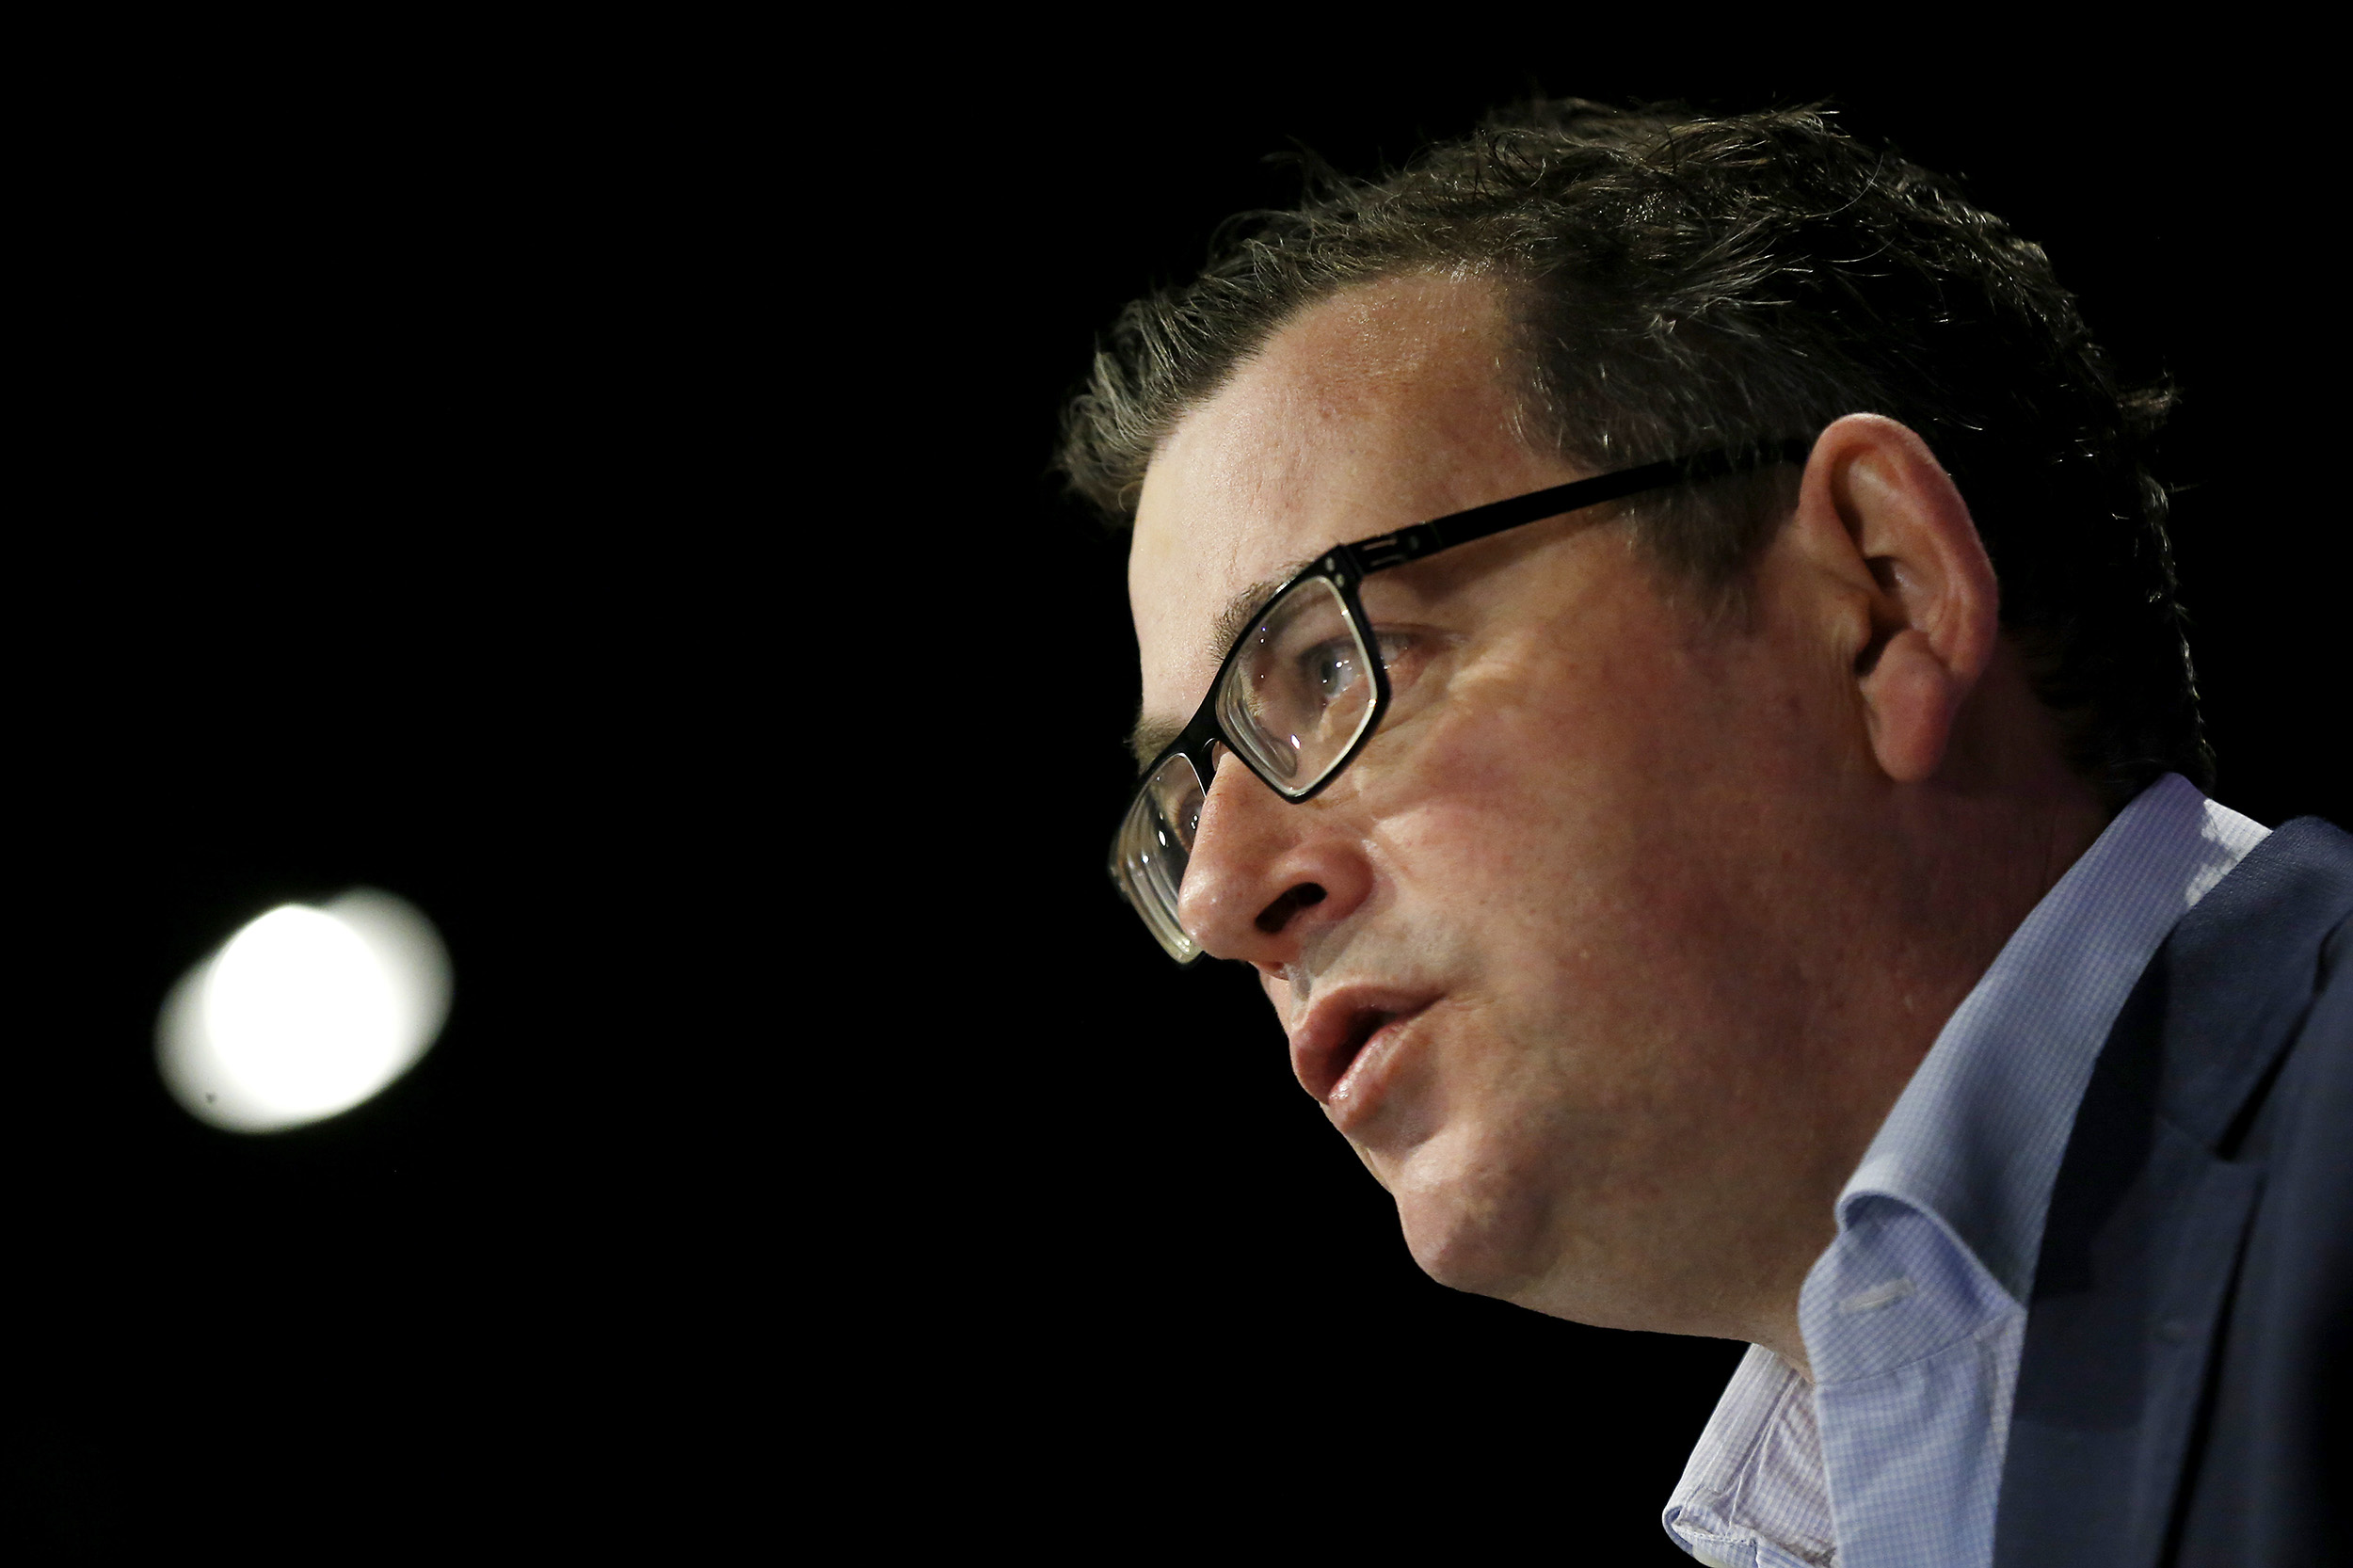 Victoria Premier Daniel Andrews addresses the media at the daily briefing on July 31, in Melbourne, Australia.